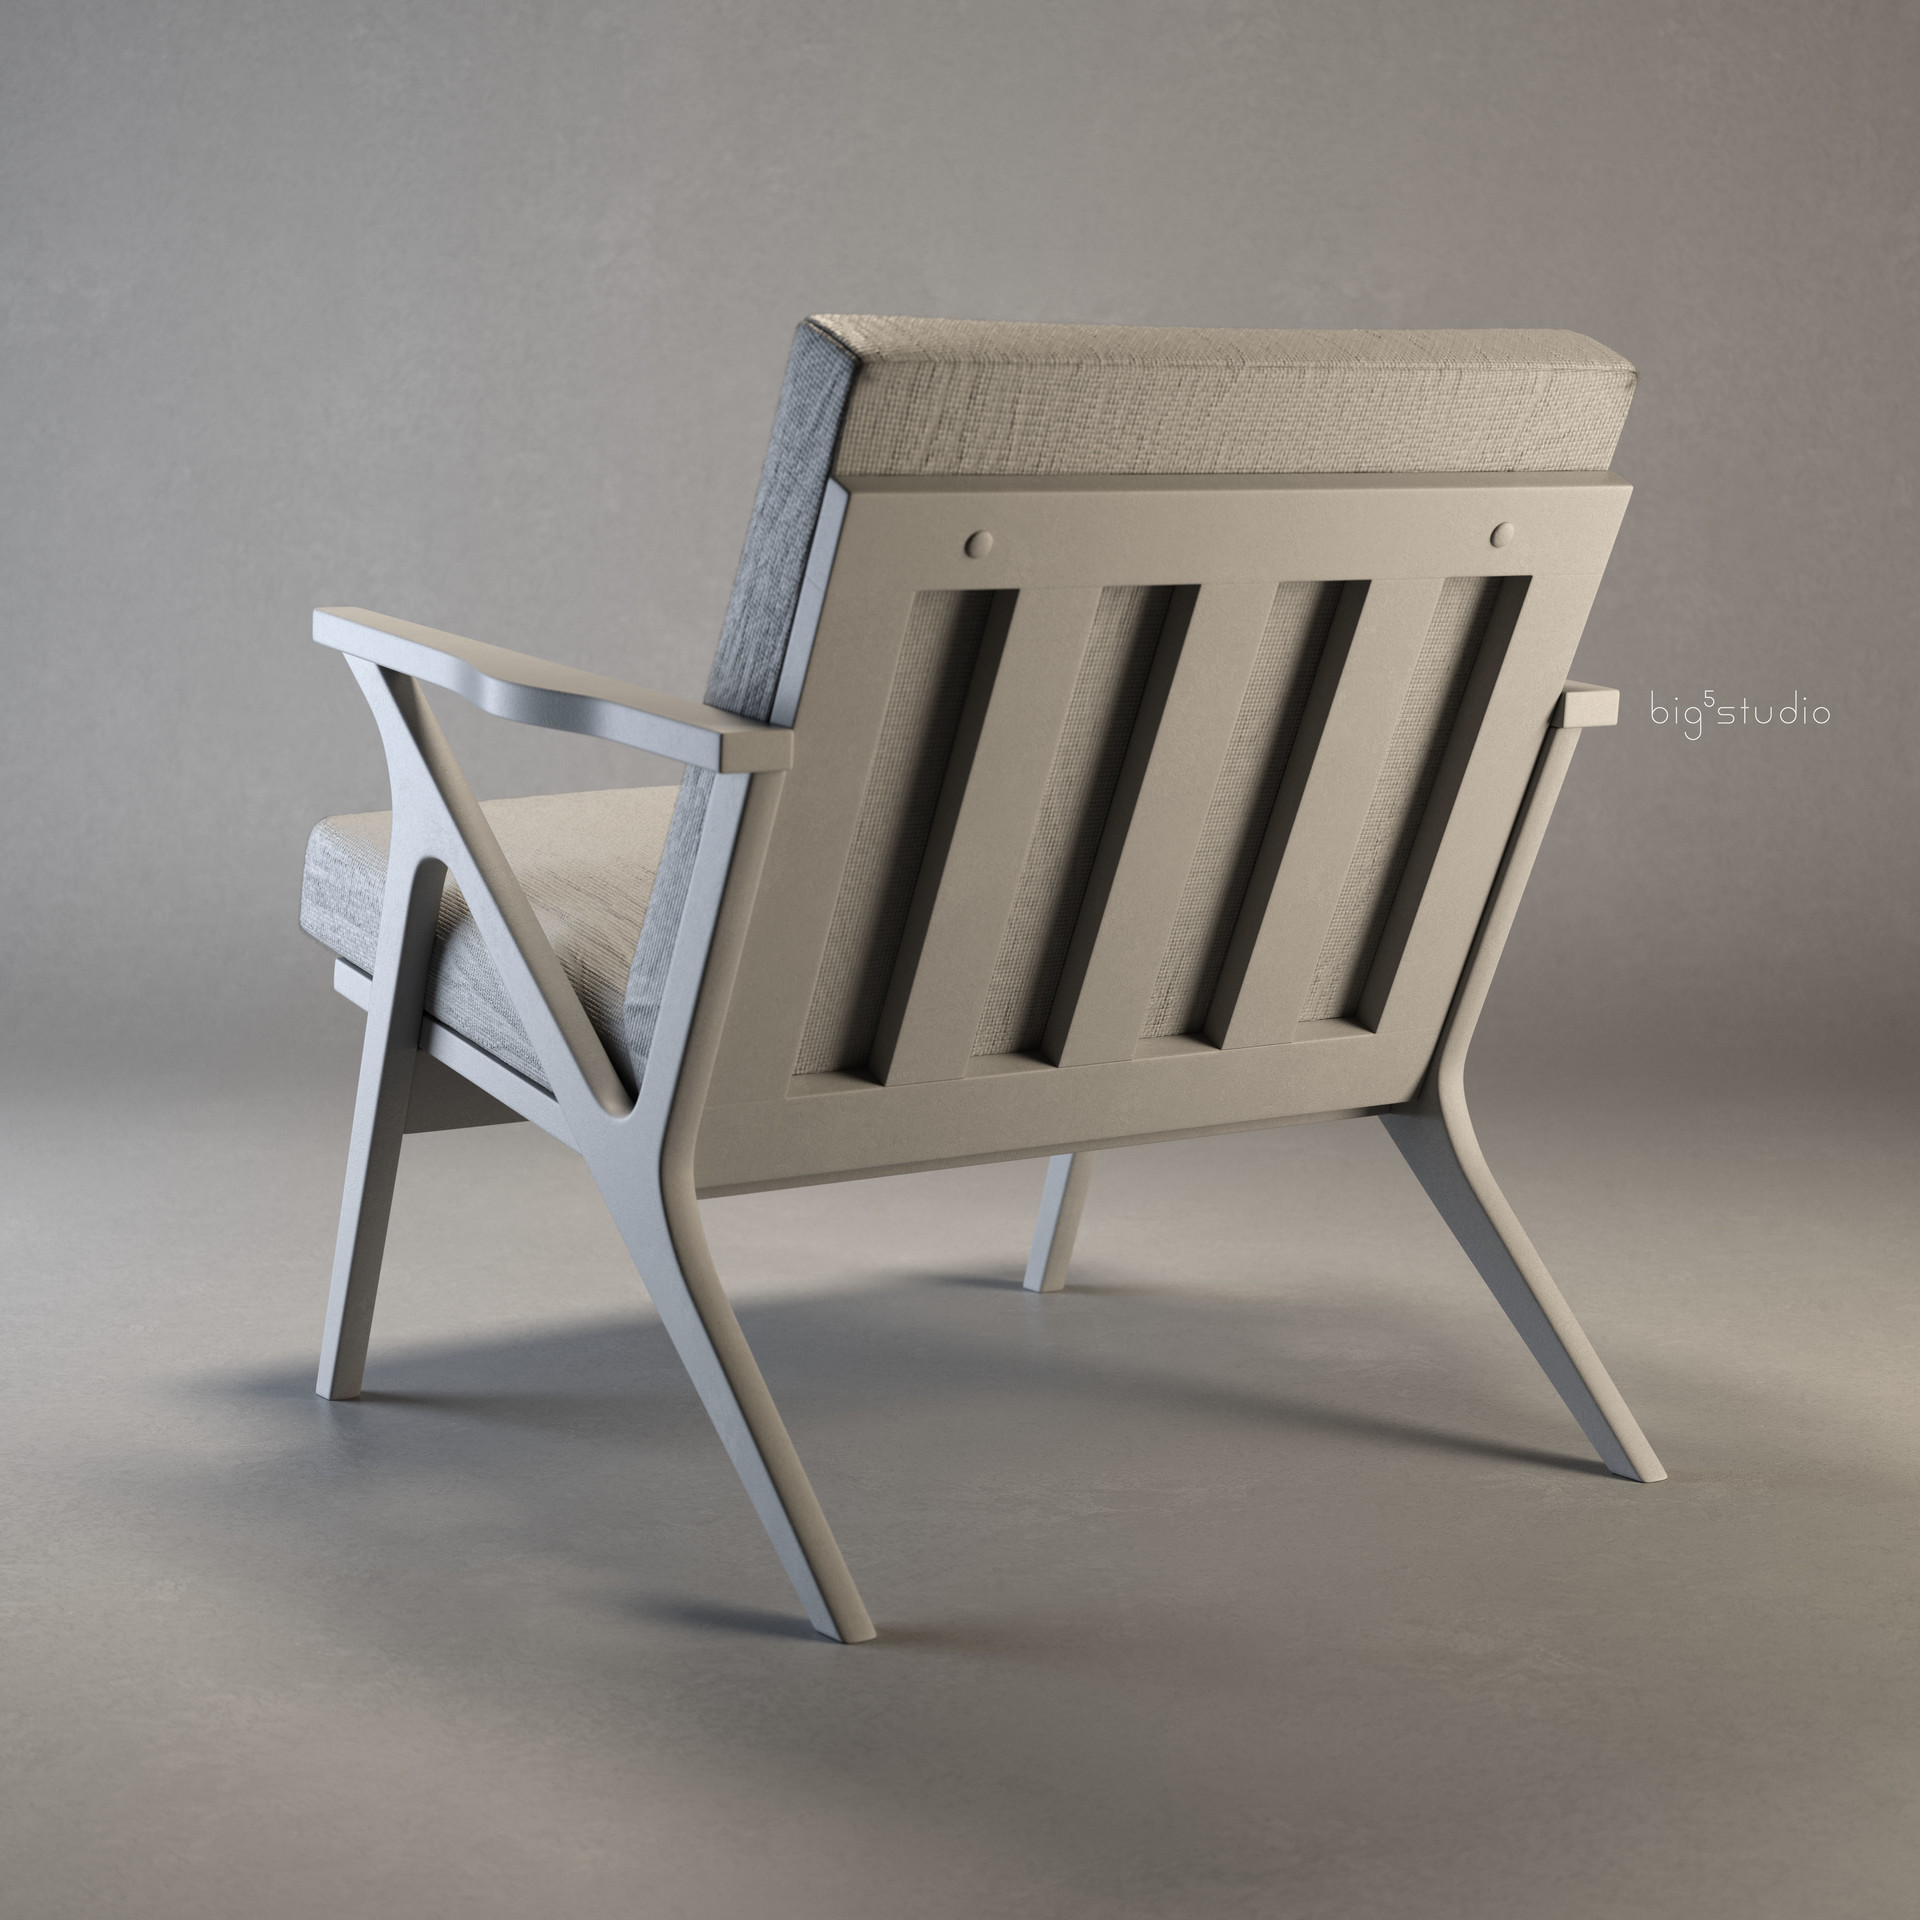 Neal biggs product chair cavettwoodframe0002 clay